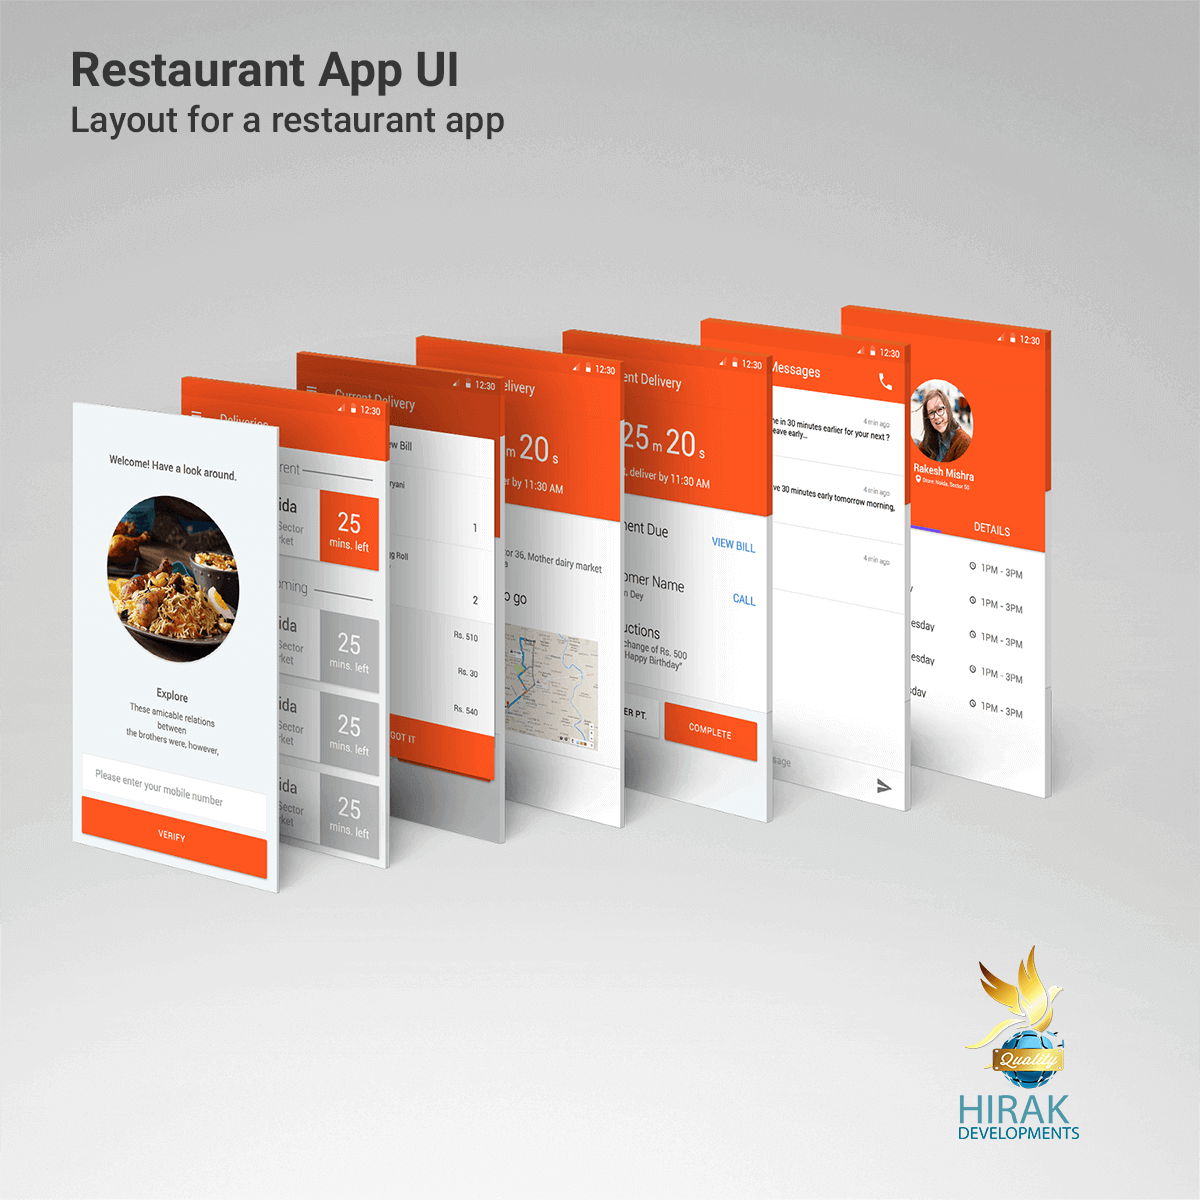 Material design layout for Restaurant App